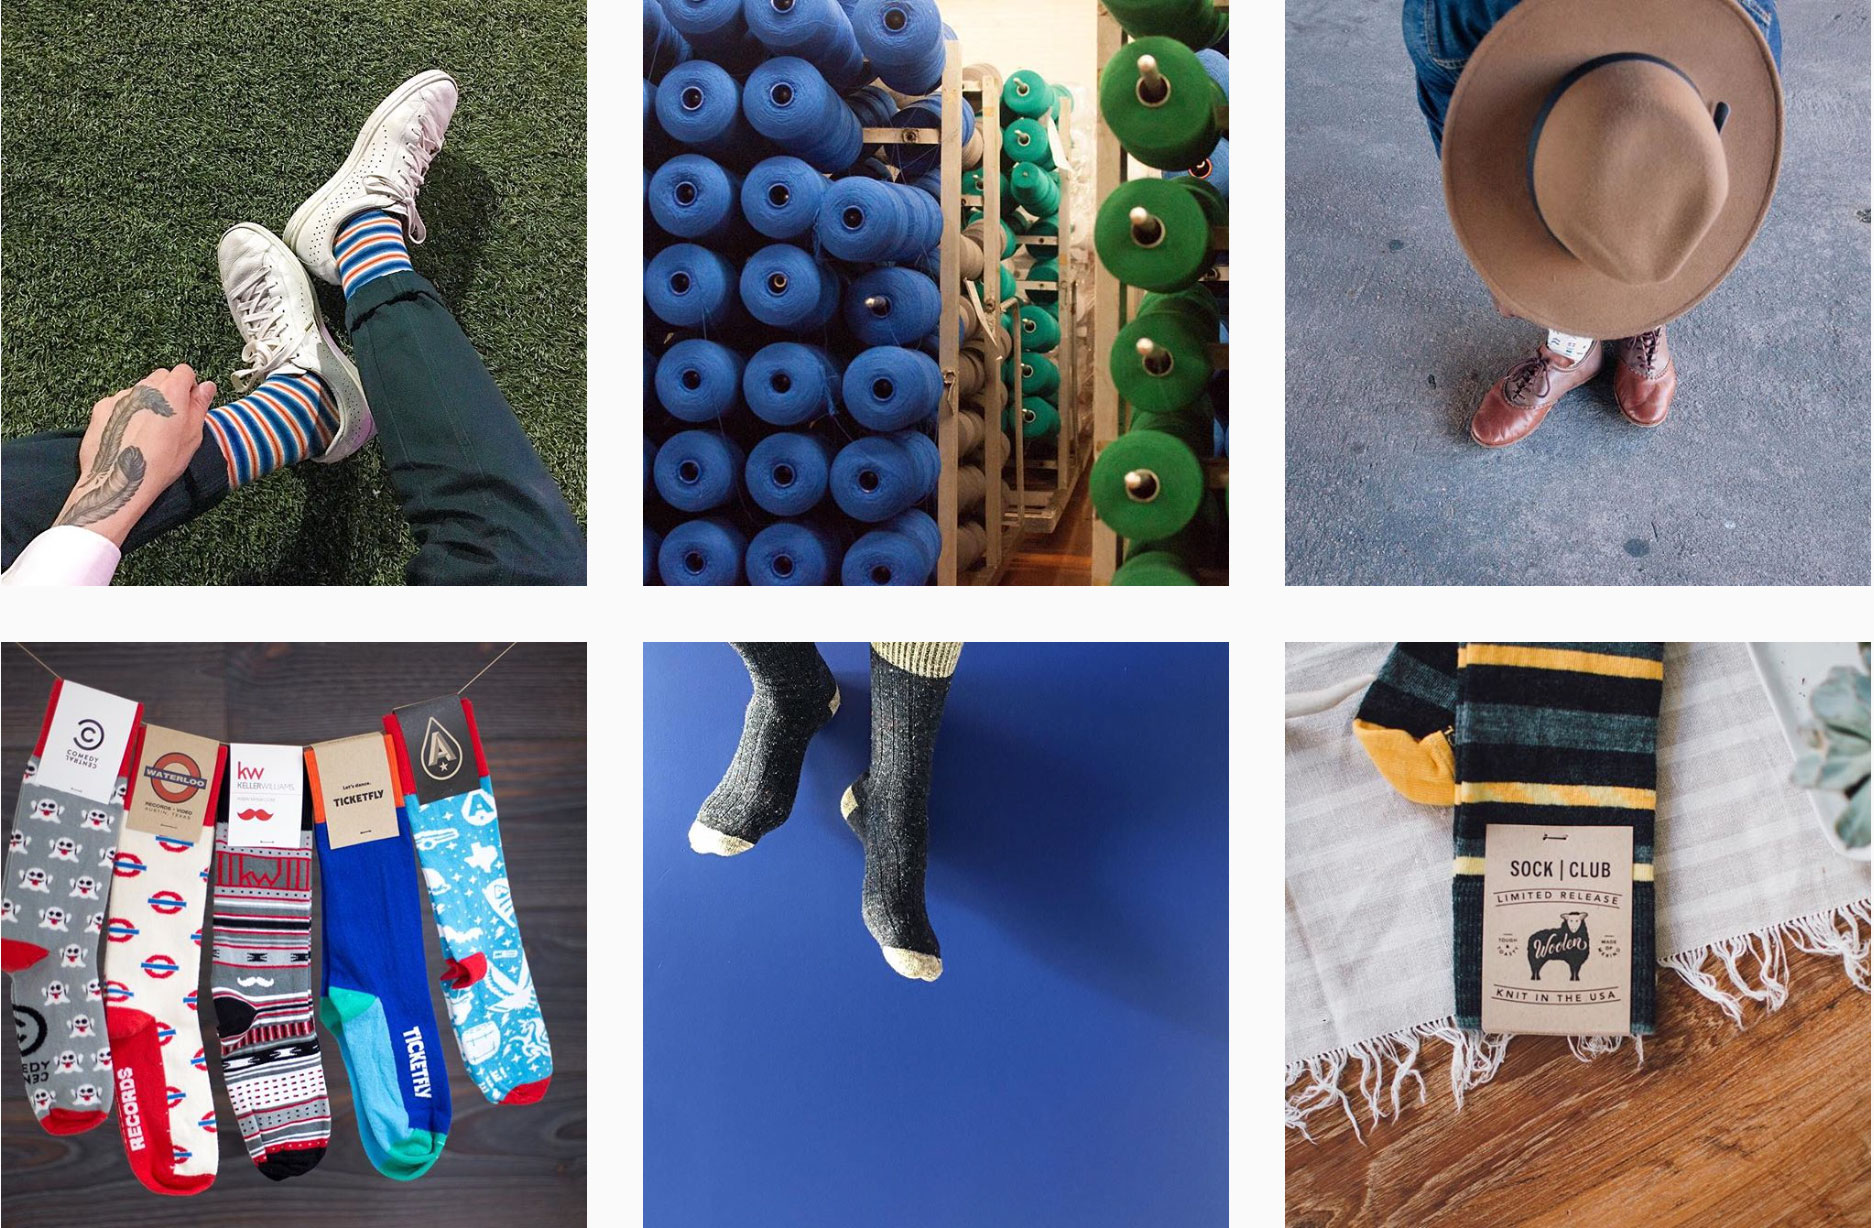 How to Brand and Instagram According to Sock Club - PLANOLY Blog 2